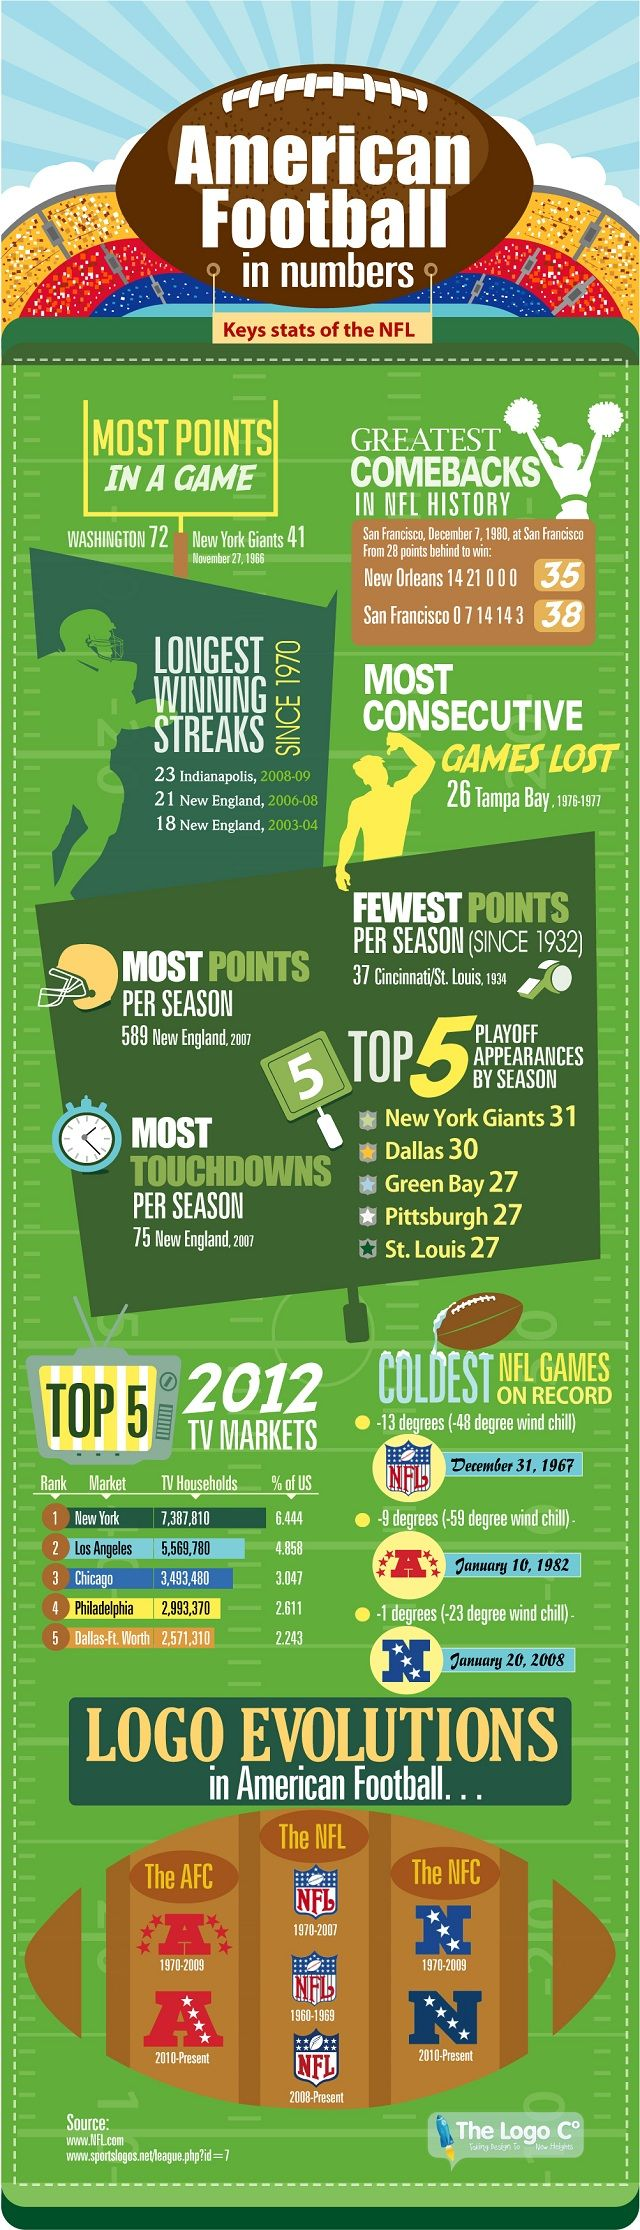 NFL: American Football in Numbers [Infographic] via @Tribesports